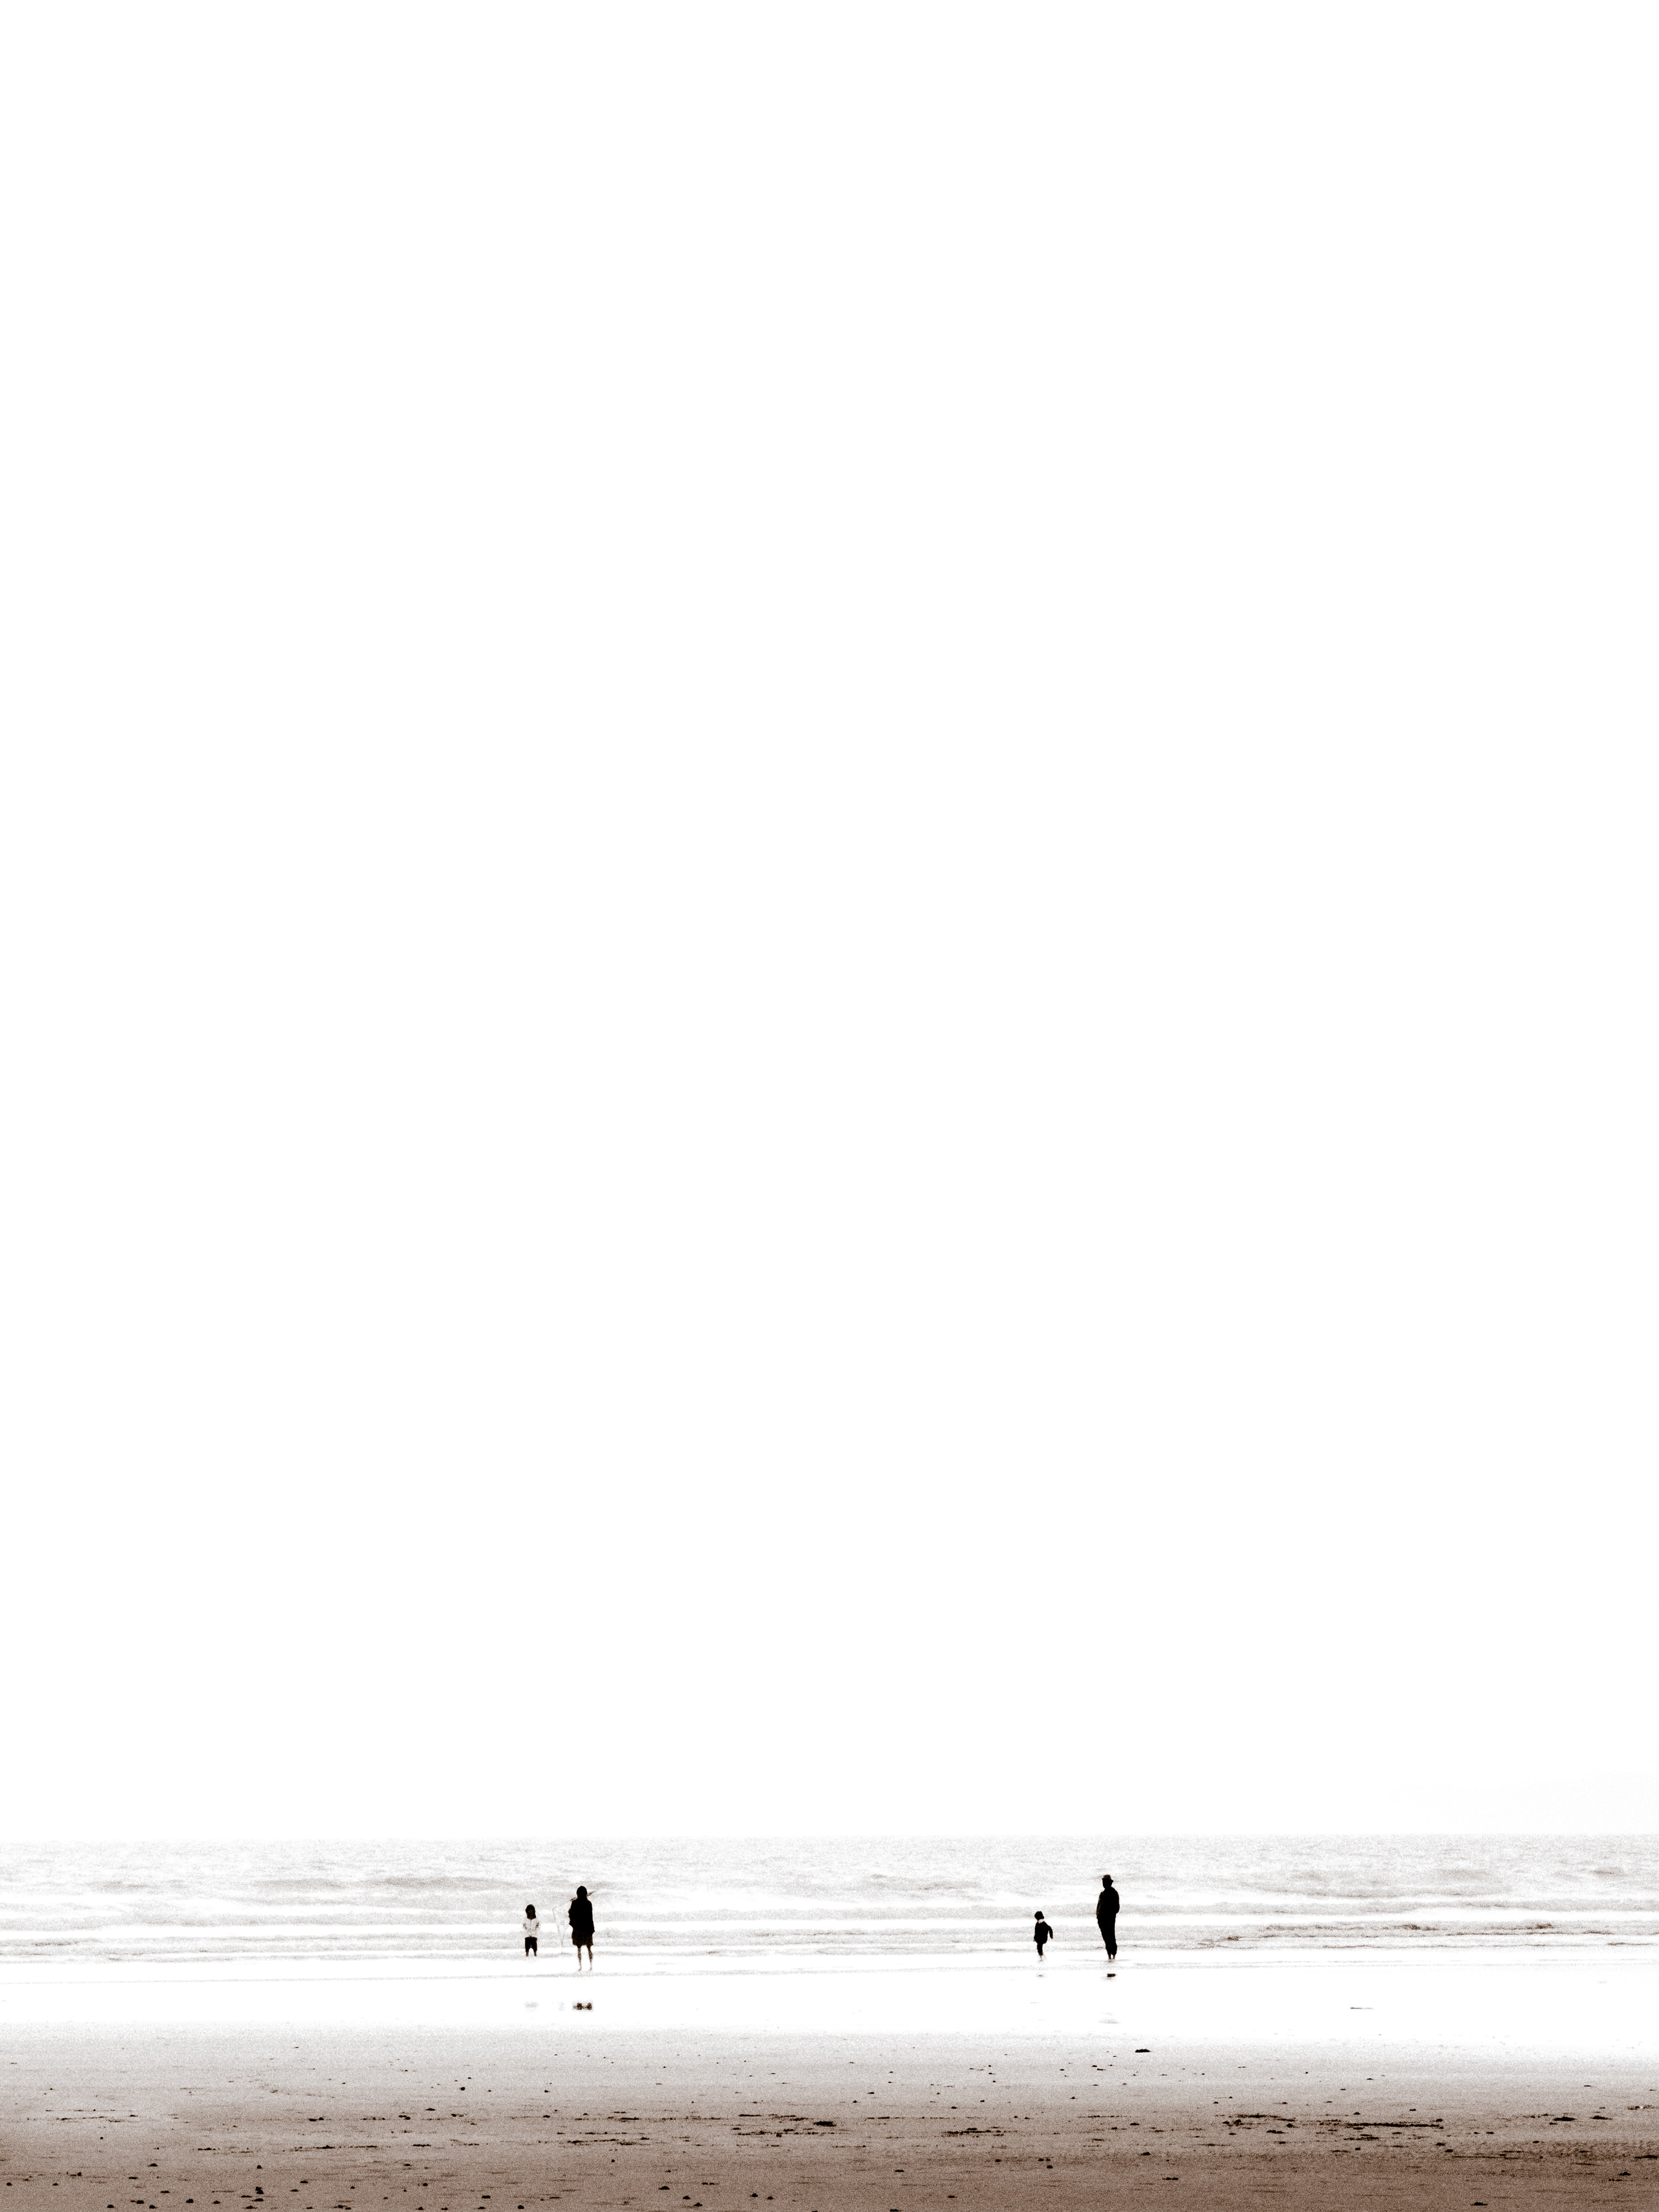 silhouette of people in beach